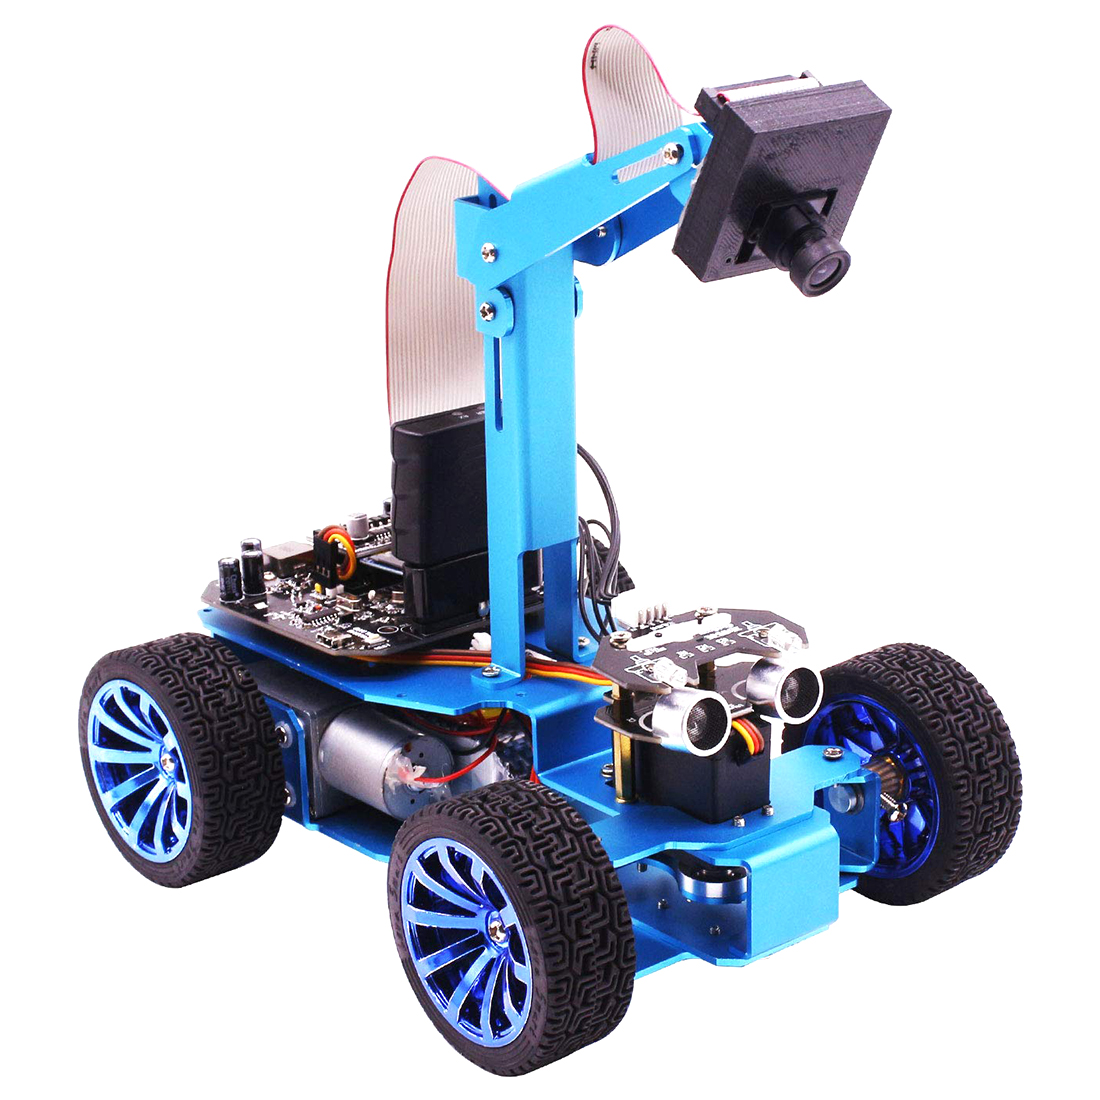 High Tech Visual Robot Camera Tracking OLED Screen Independent Steering Robotics High Power Motor Programmable Car Toys Gift